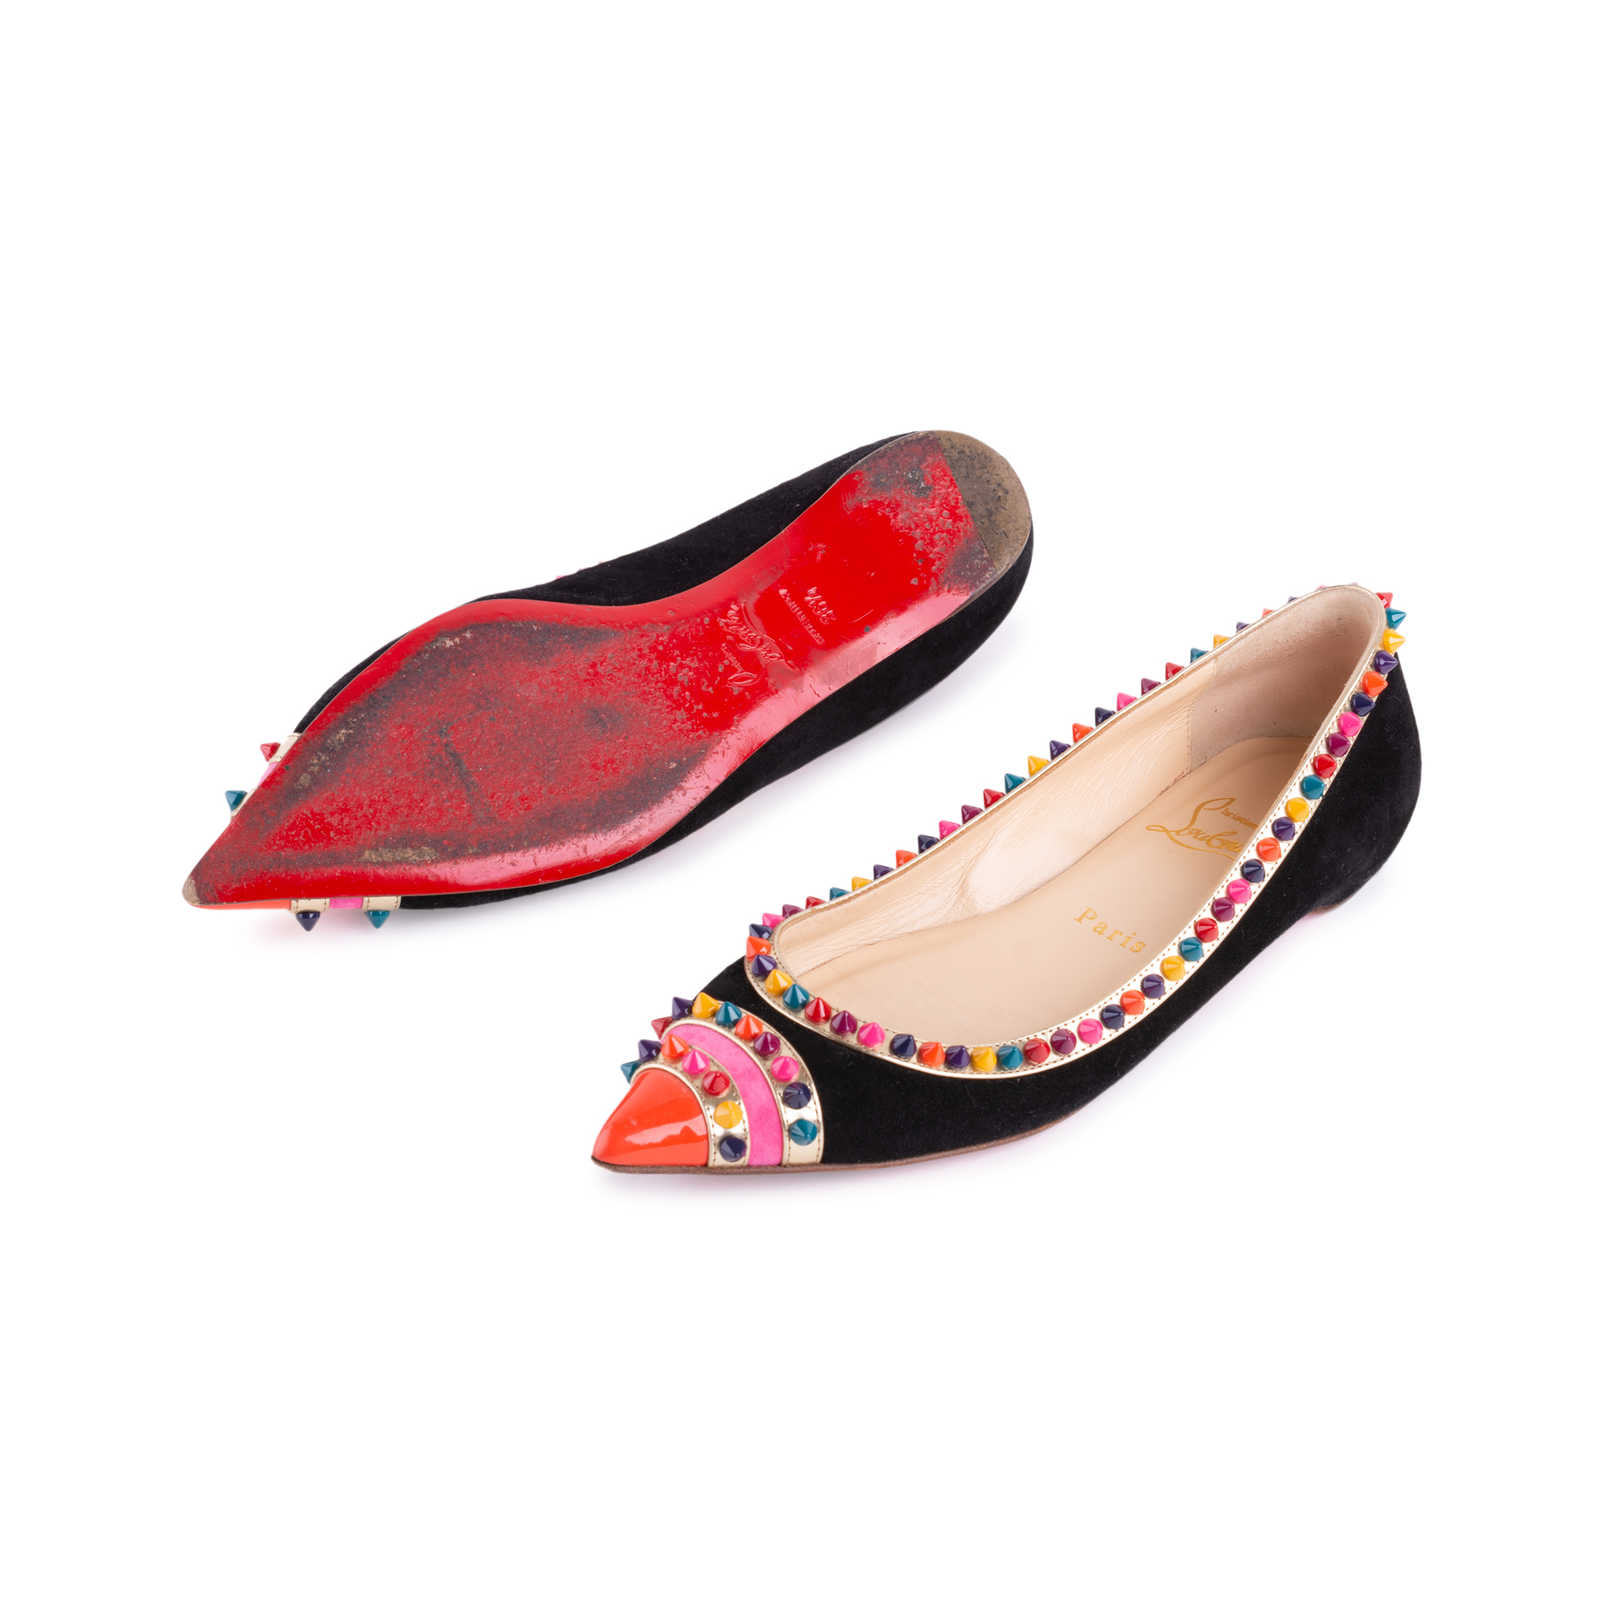 683930ccdc2 ... Authentic Second Hand Christian Louboutin Malabar Spike Flats  (PSS-607-00003) ...